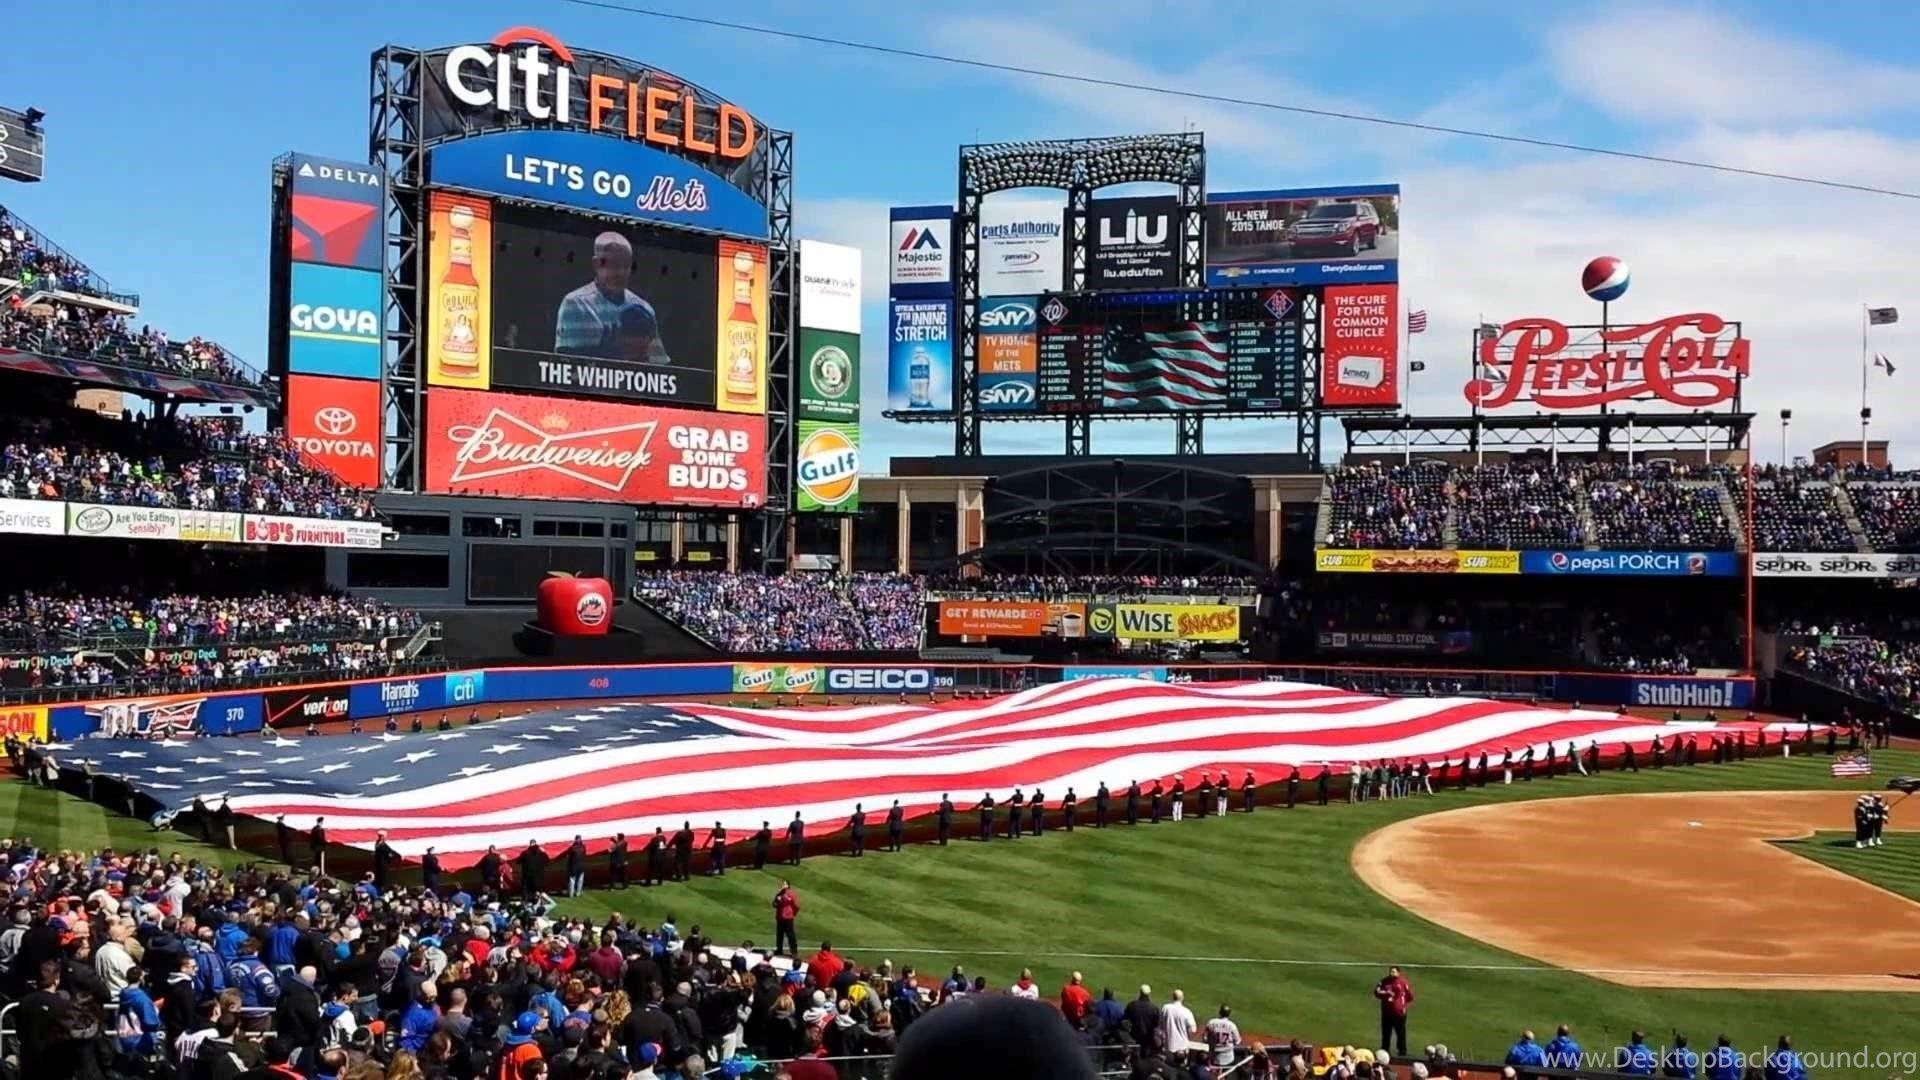 New york mets citi field wallpapers wallpaper cave citi field wallpaper fresh 2014 opening day citi field for the mets altavistaventures Image collections